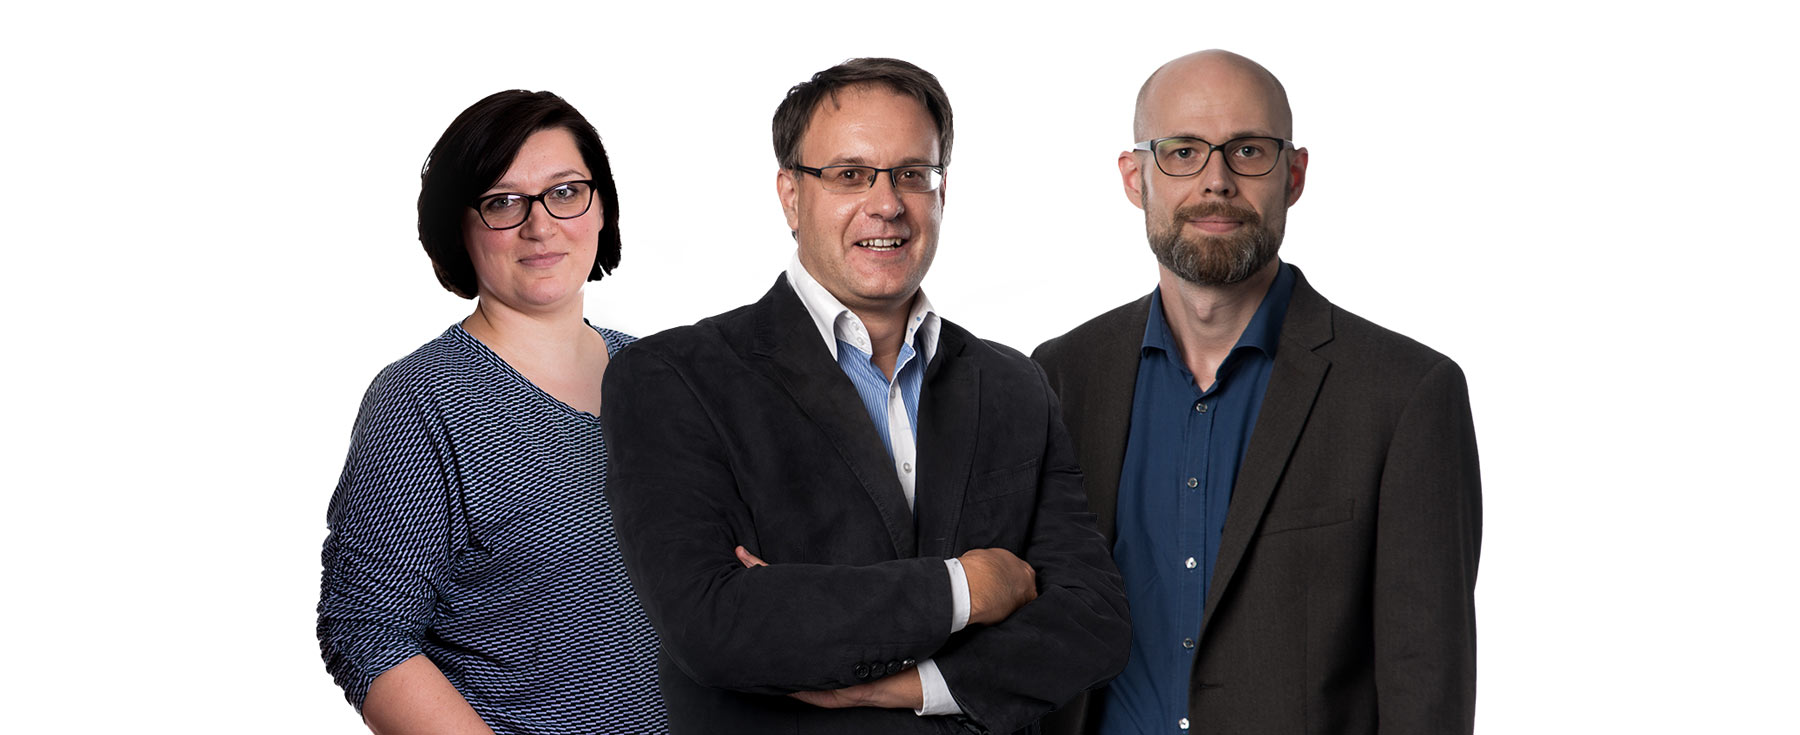 all-in-personalberatung-team-2020-herbst-w